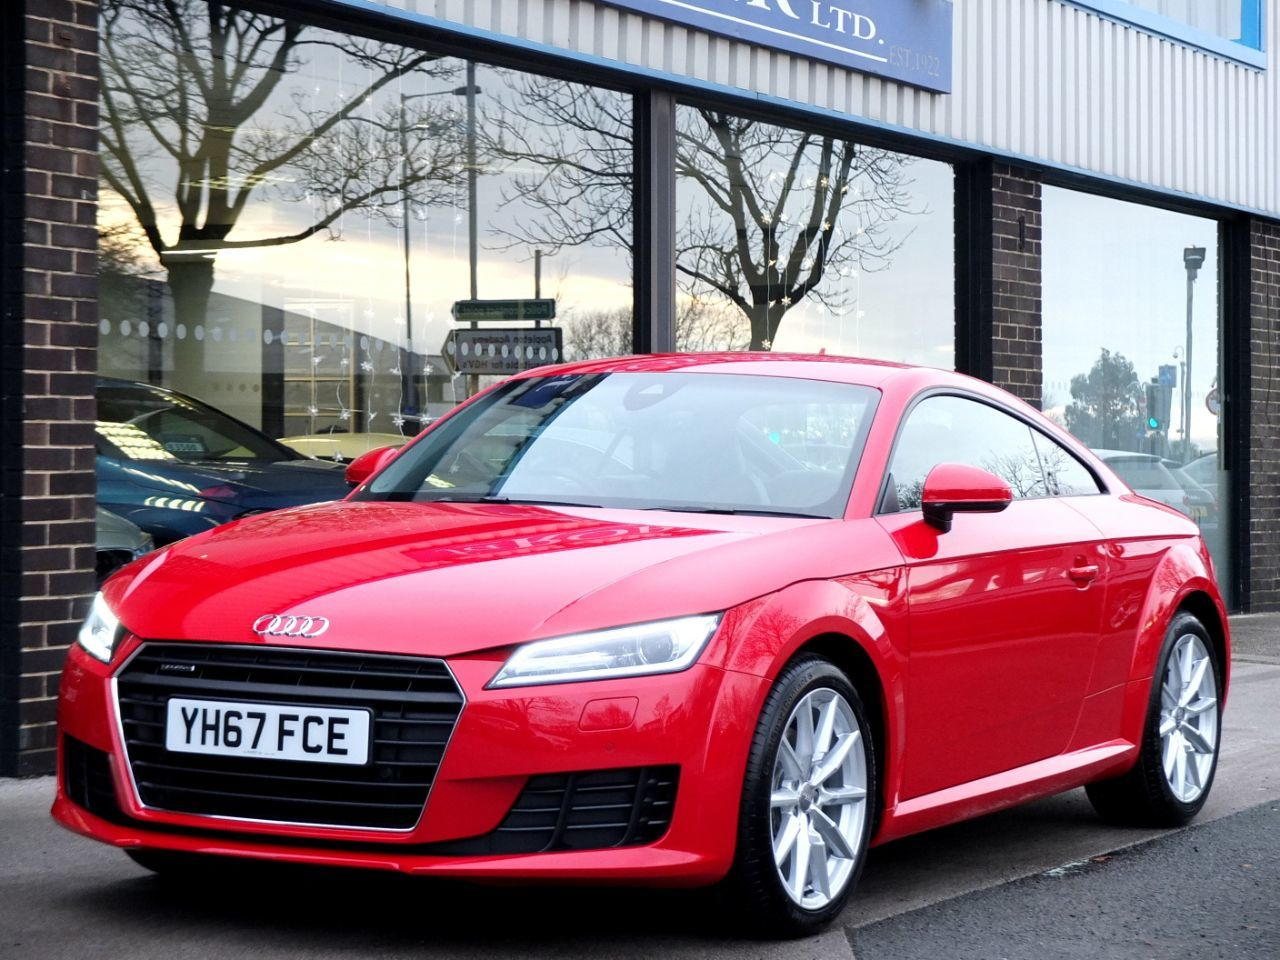 Audi TT Coupe 2.0T FSI quattro Sport S tronic 230ps Coupe Petrol Tango Red MetallicAudi TT Coupe 2.0T FSI quattro Sport S tronic 230ps Coupe Petrol Tango Red Metallic at fa Roper Ltd Bradford